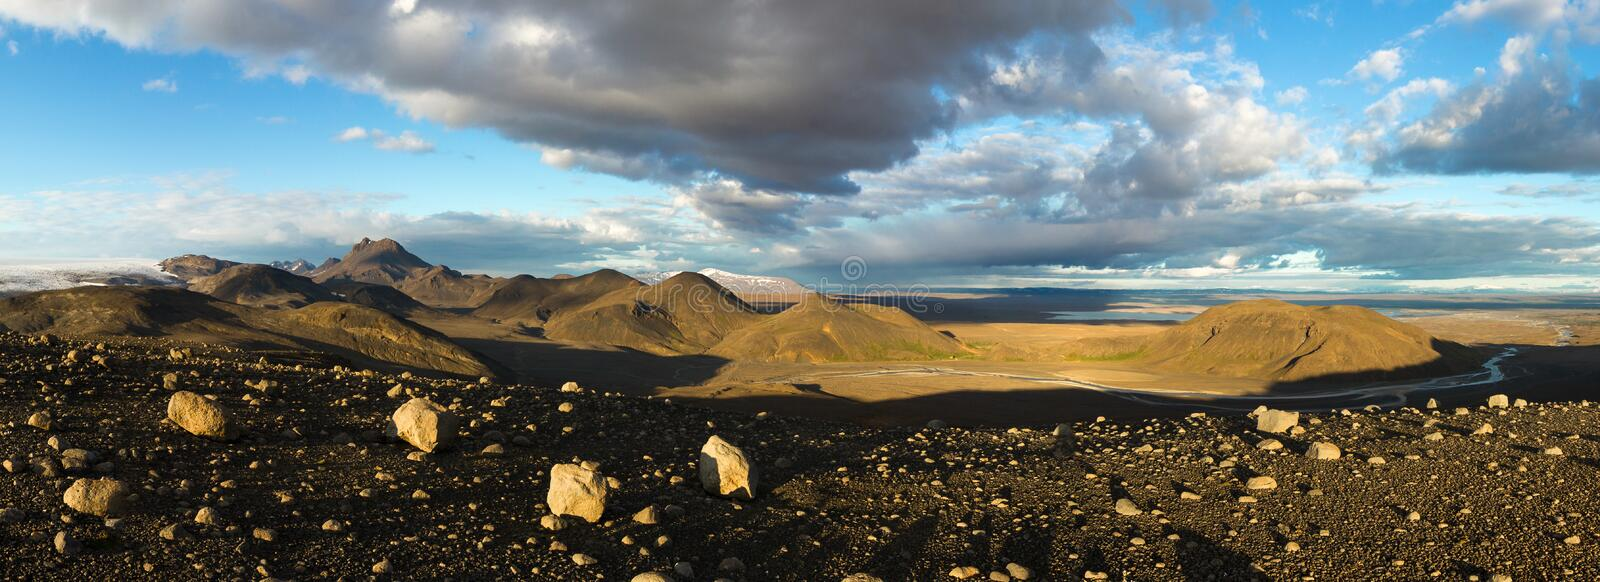 Illuminated panoramic landscape with mountains, glacier and lake in Iceland. Beautiful midnight sun scenery. stock images